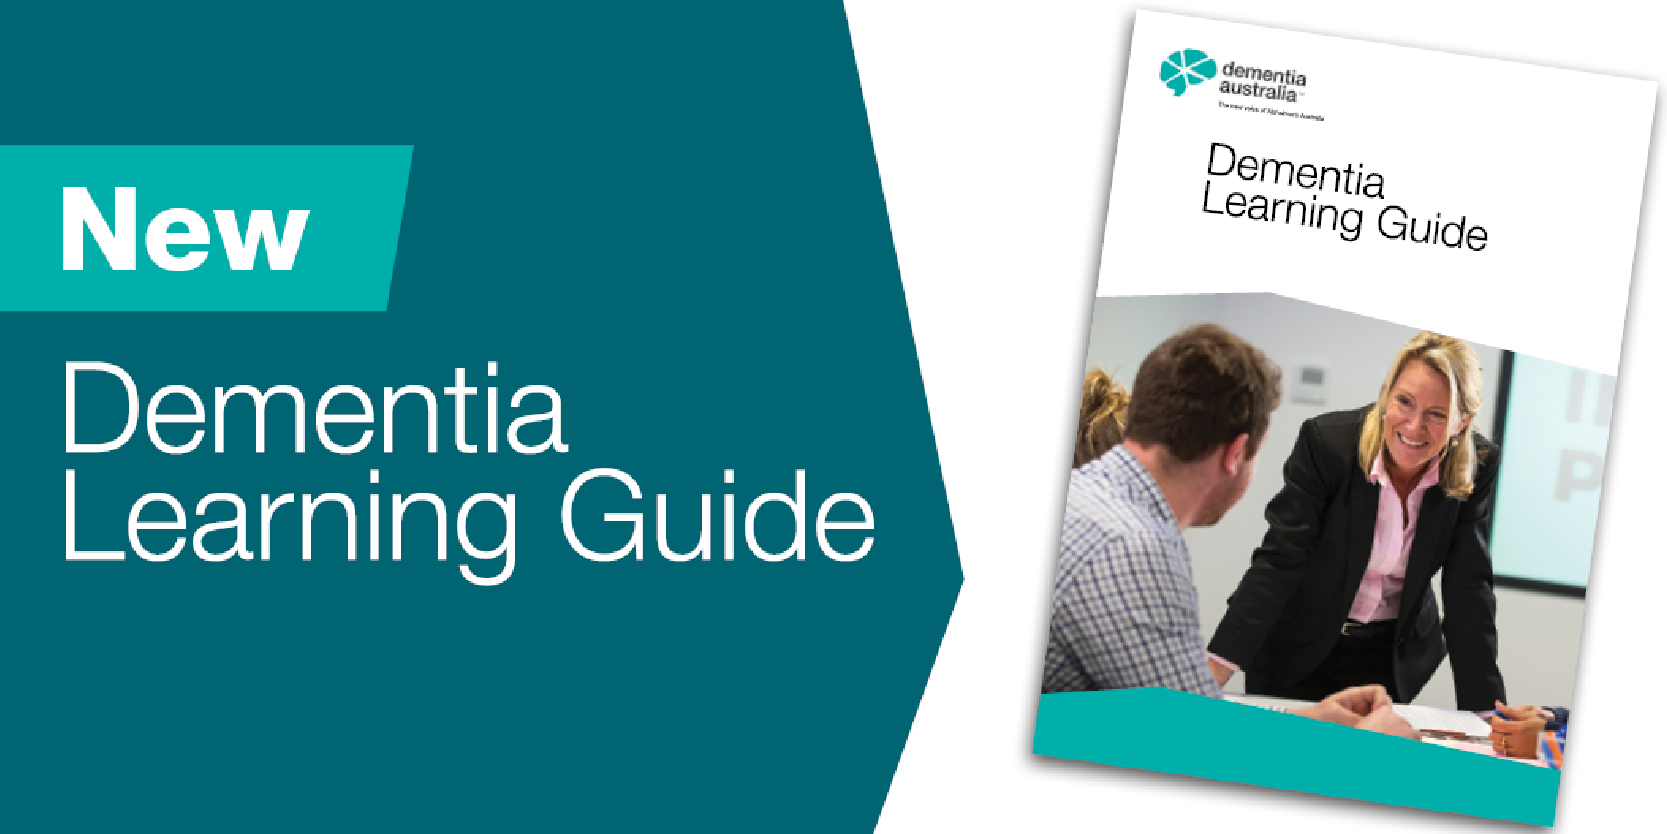 Dementia Learning Guide 2017